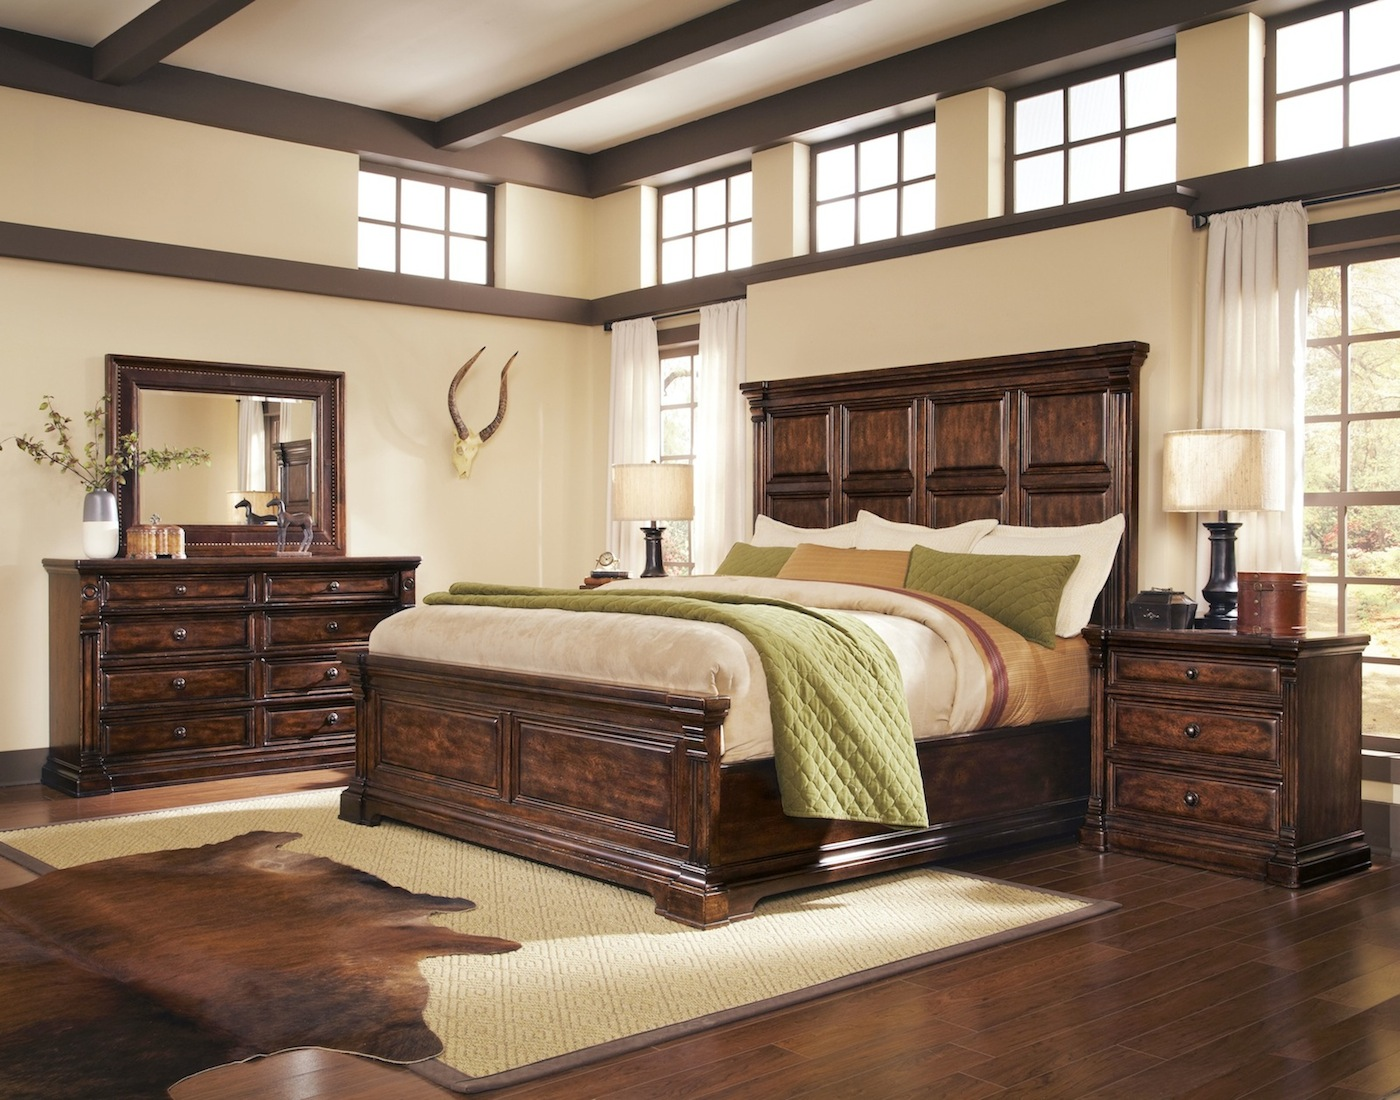 Whiskey oak rustic inspired wooden panel bedroom set 205000 for Rustic bedroom furniture